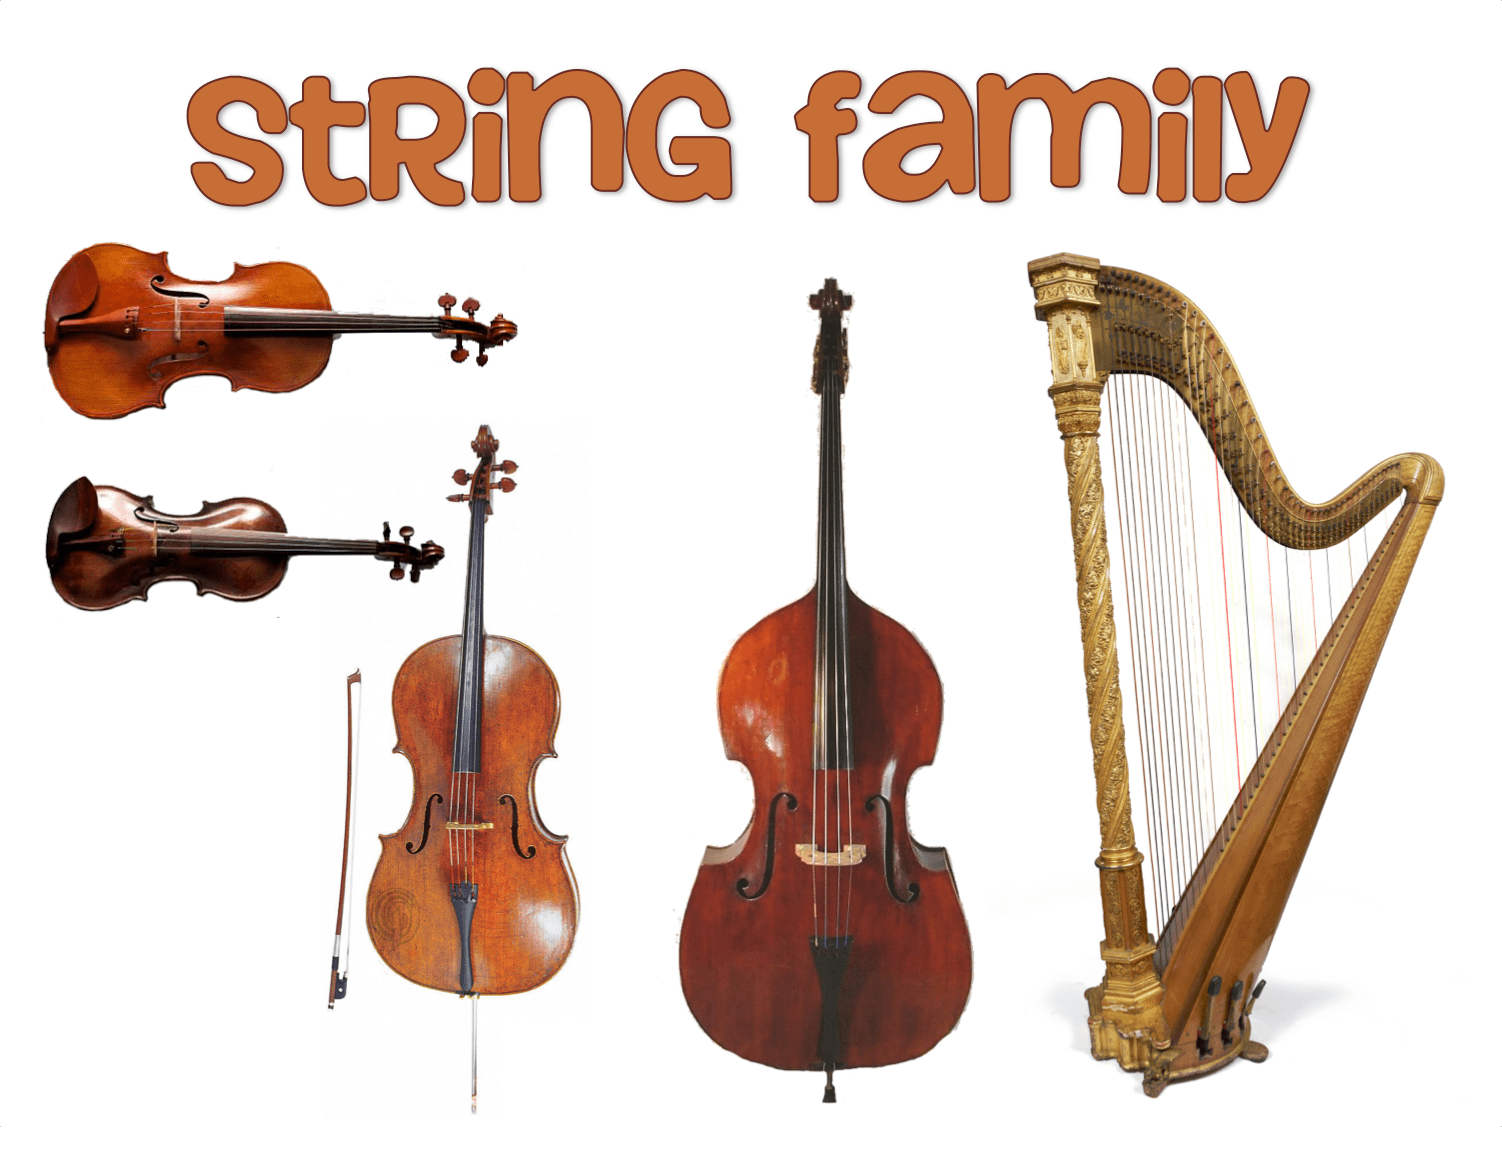 Stringed Instruments Clipart